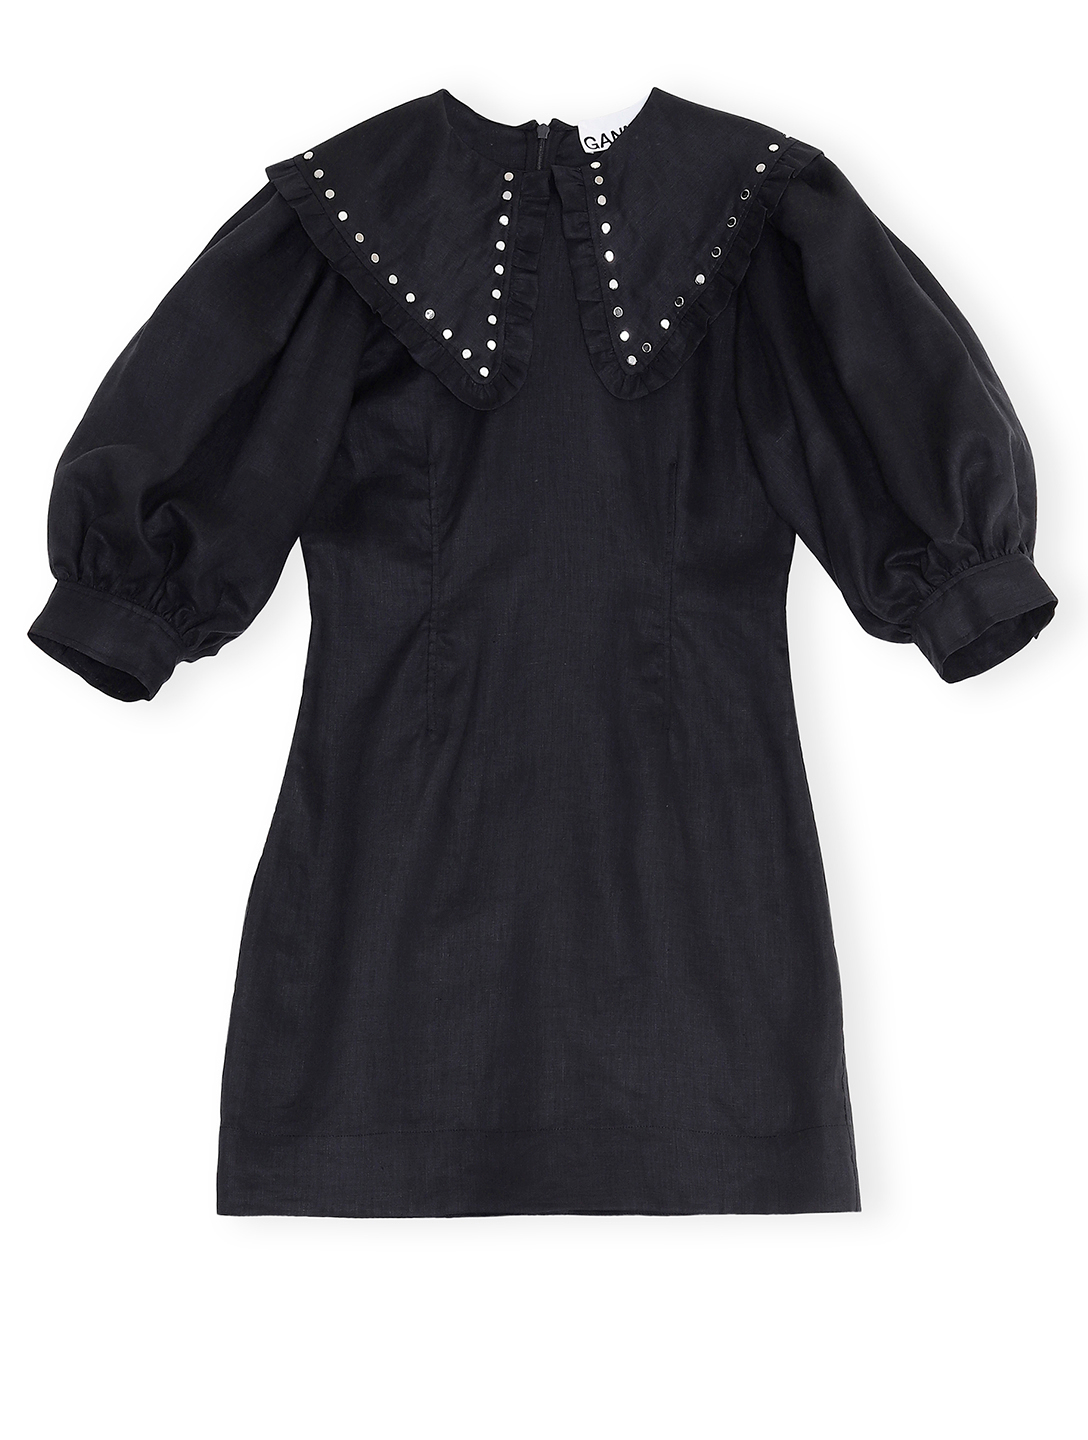 GANNI Linen Bib Mini Dress Women's Black